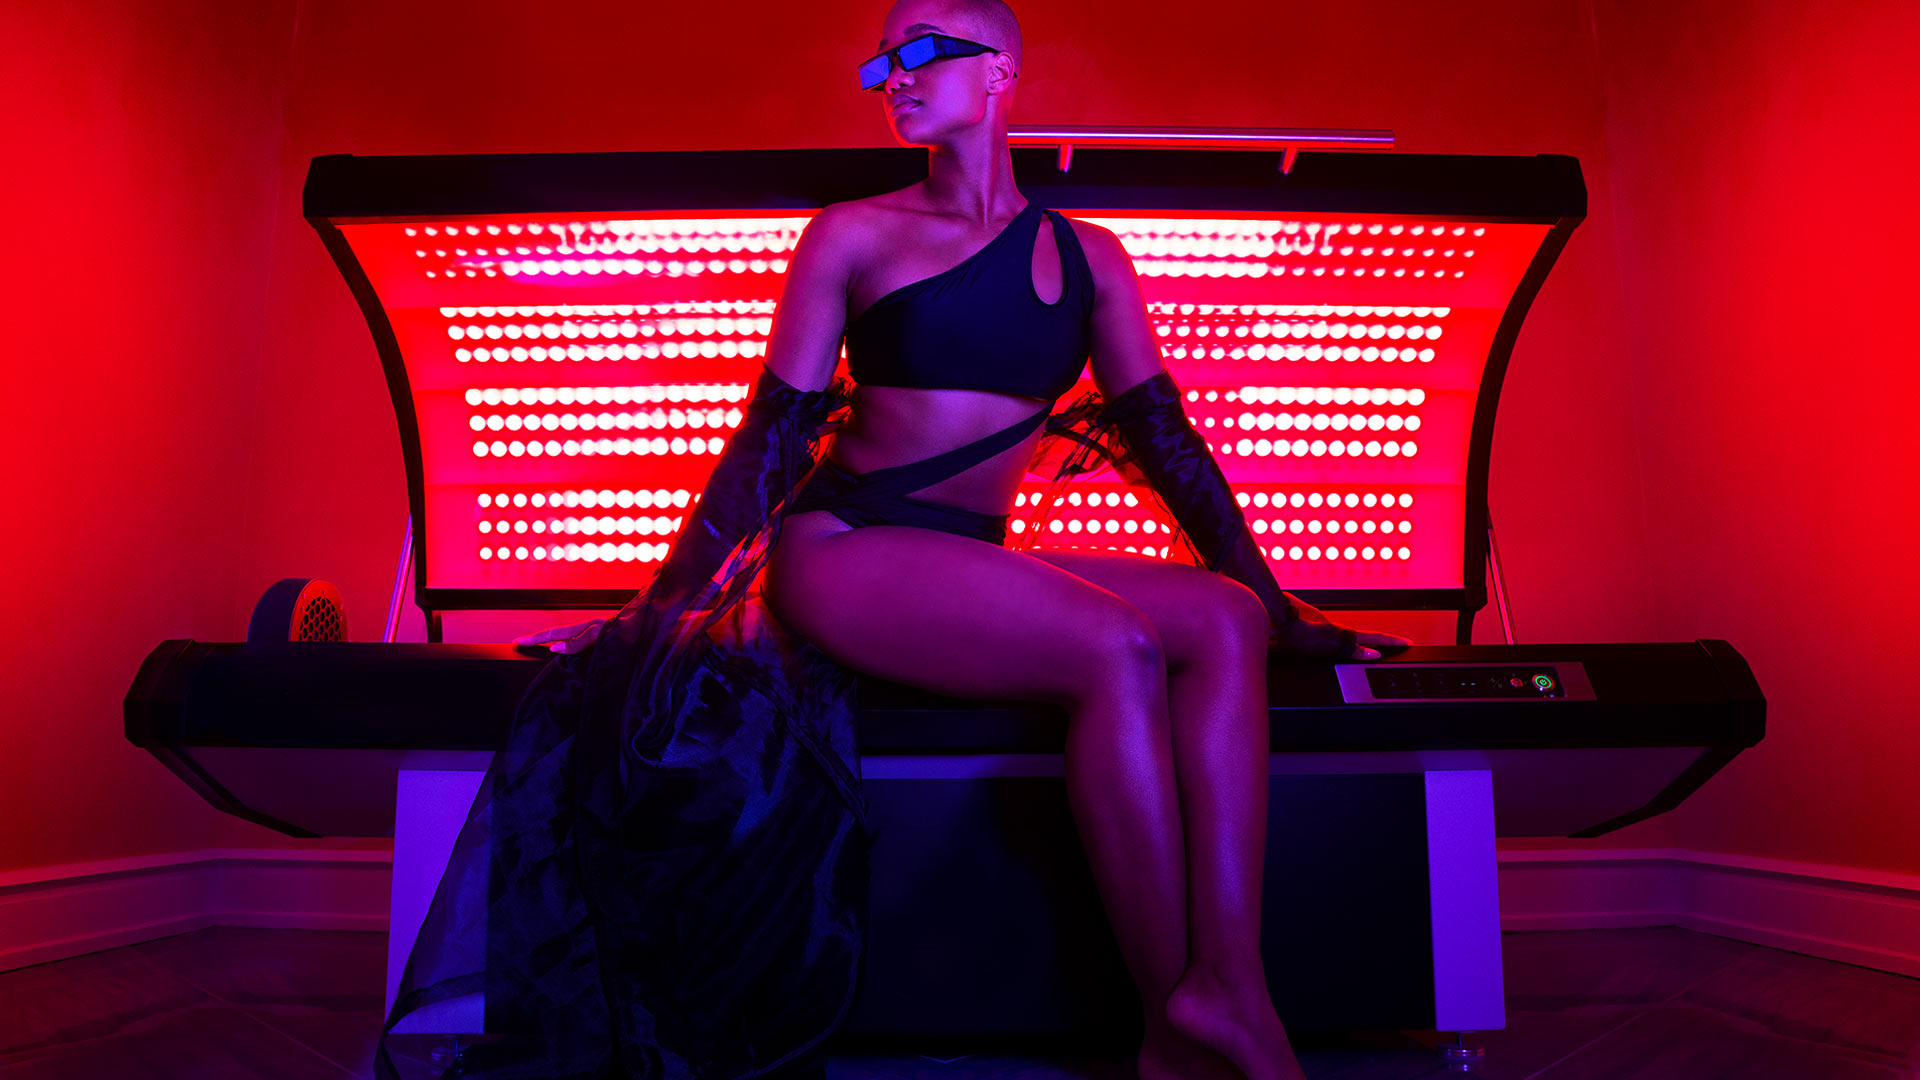 a woman dressed in a fashionable black bikini is sitting on a infrared light bed